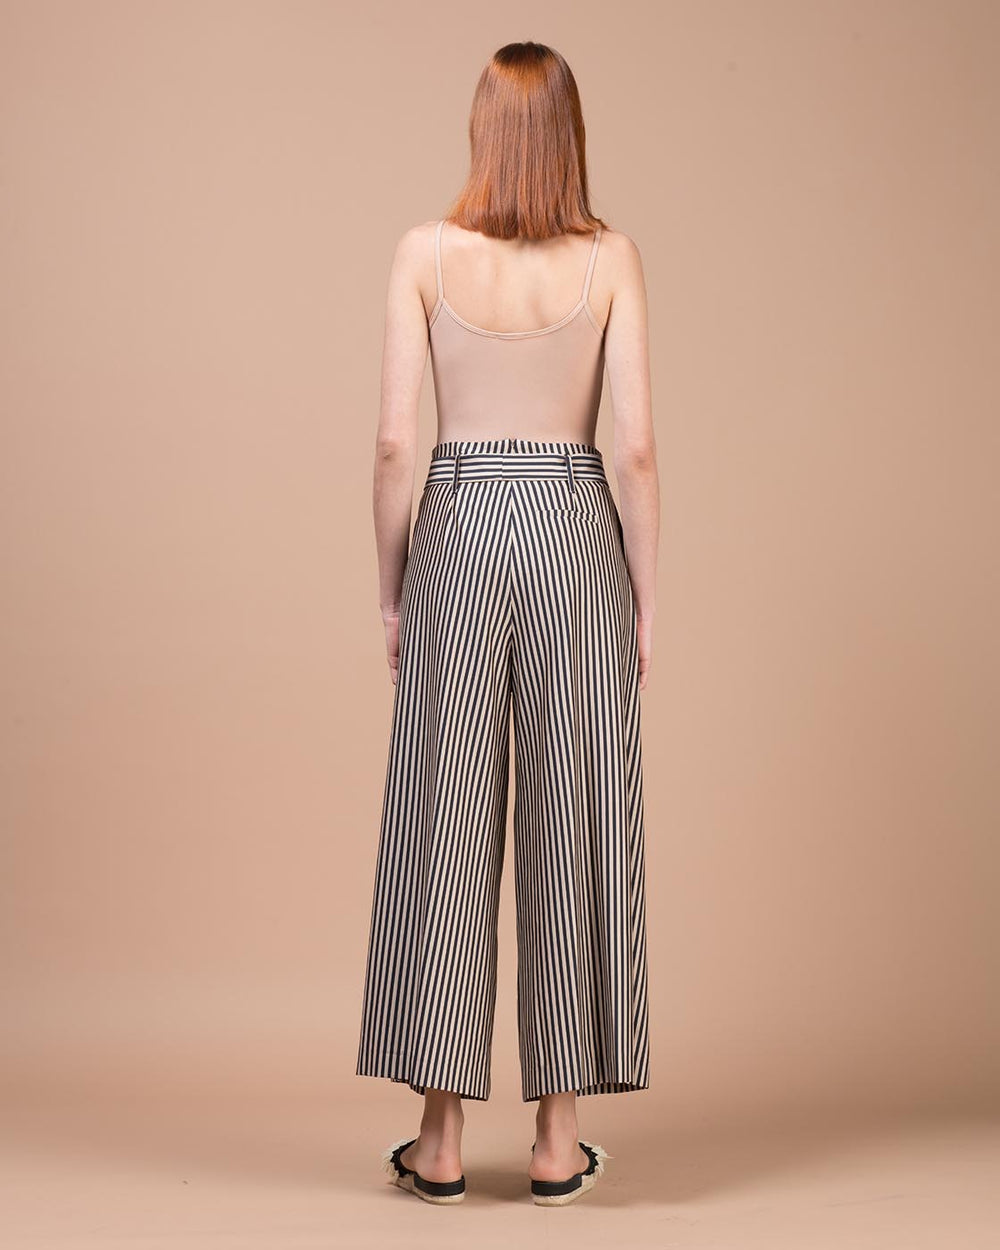 Beige & Black Striped Wide Pants